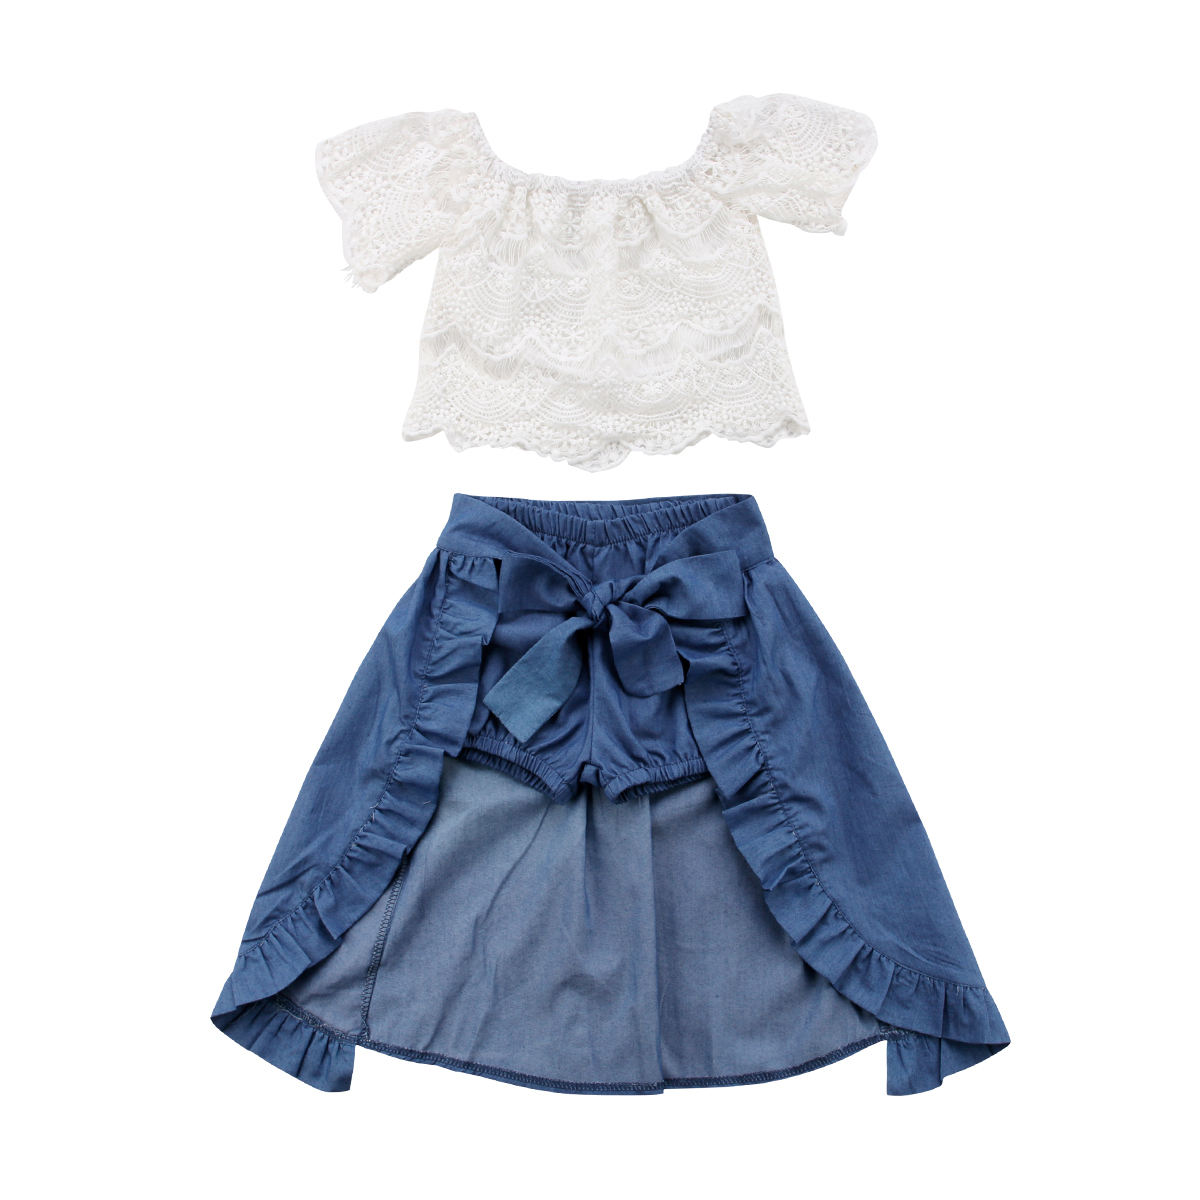 все цены на Summer Girls Kid Lace Off-shoulder T-shirt Tops Denim Shorts Dresses Clothes Outfits 3pcs Children Party Beach Clothing Set 1-6Y онлайн